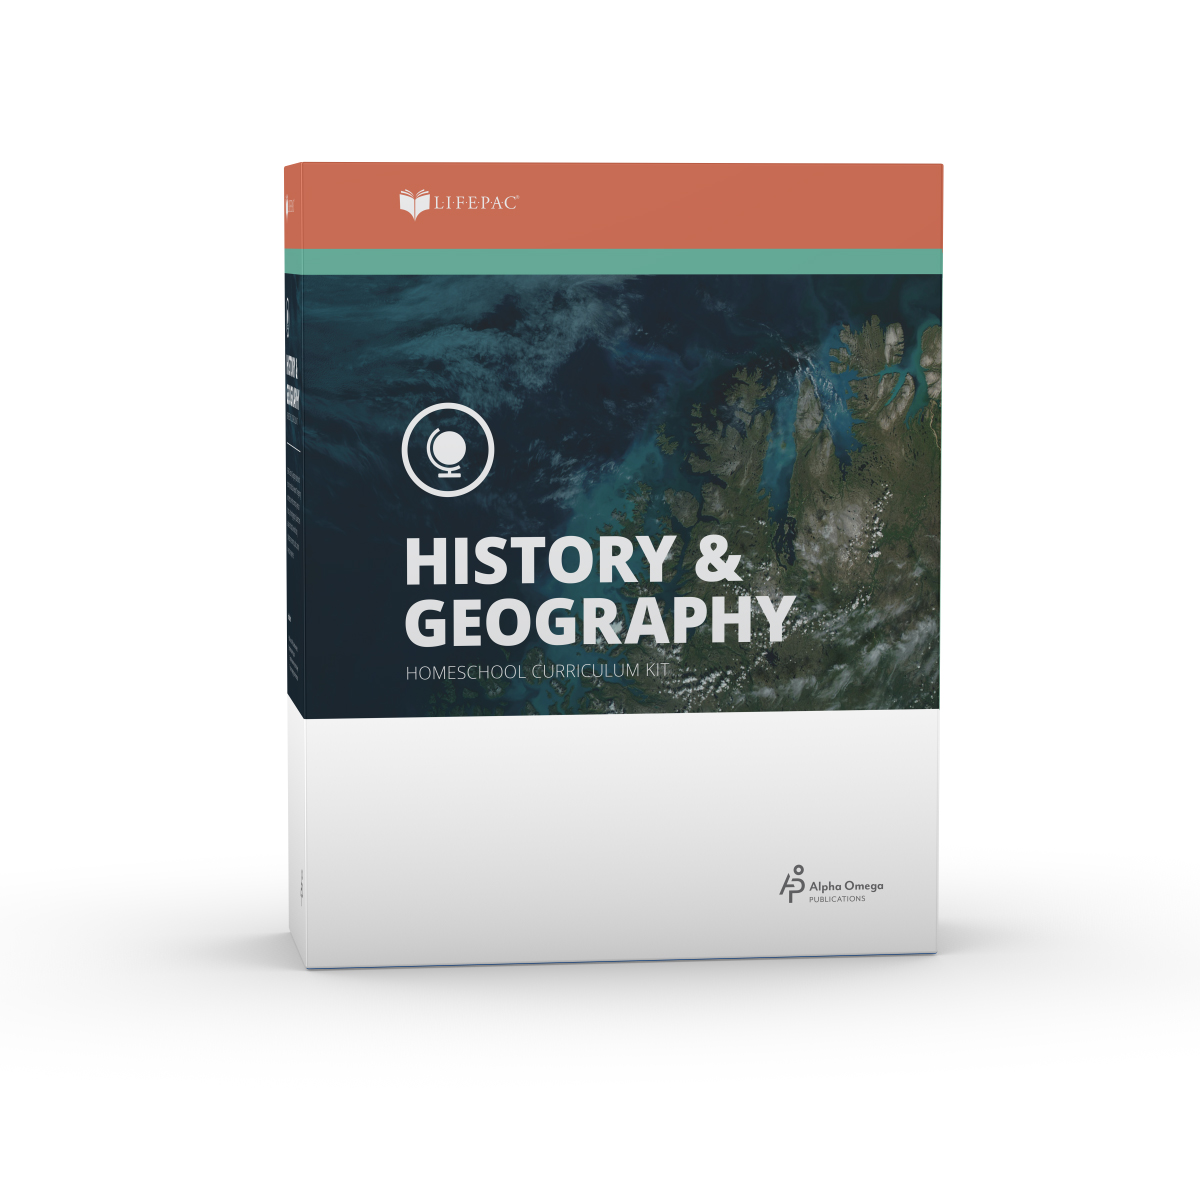 LIFEPAC 6th Grade History & Geography Set